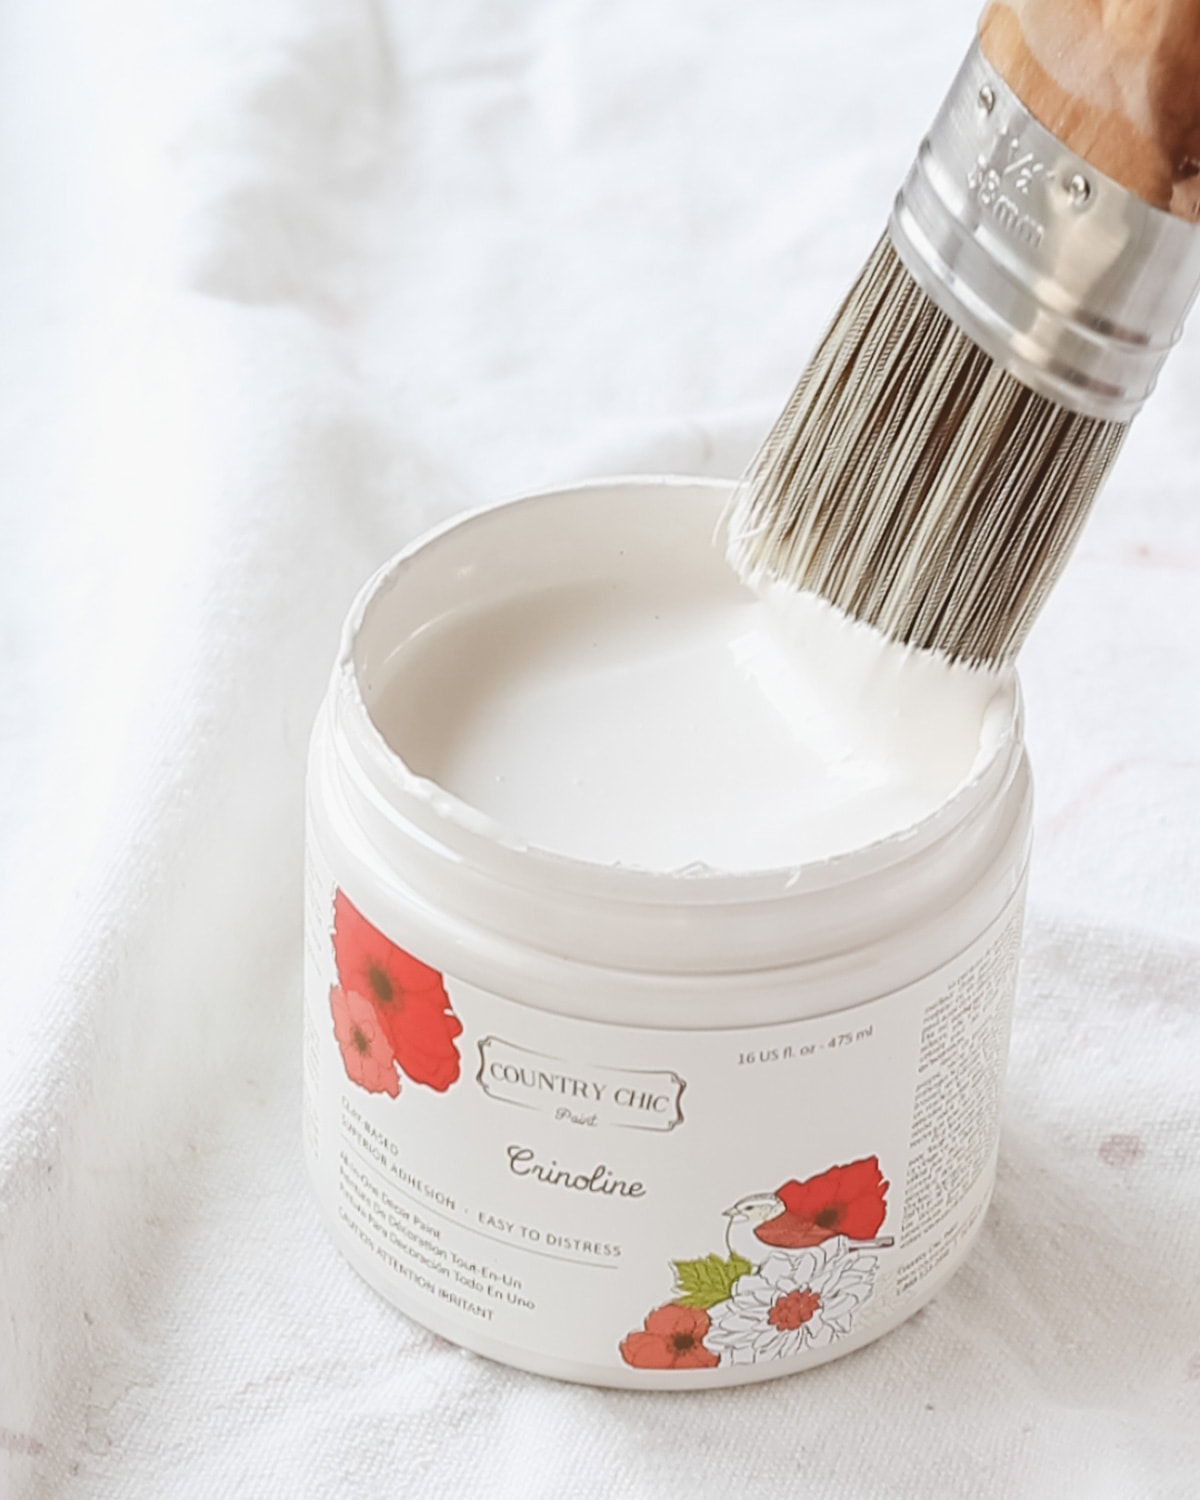 A paintbrush dipping into a can of paint.